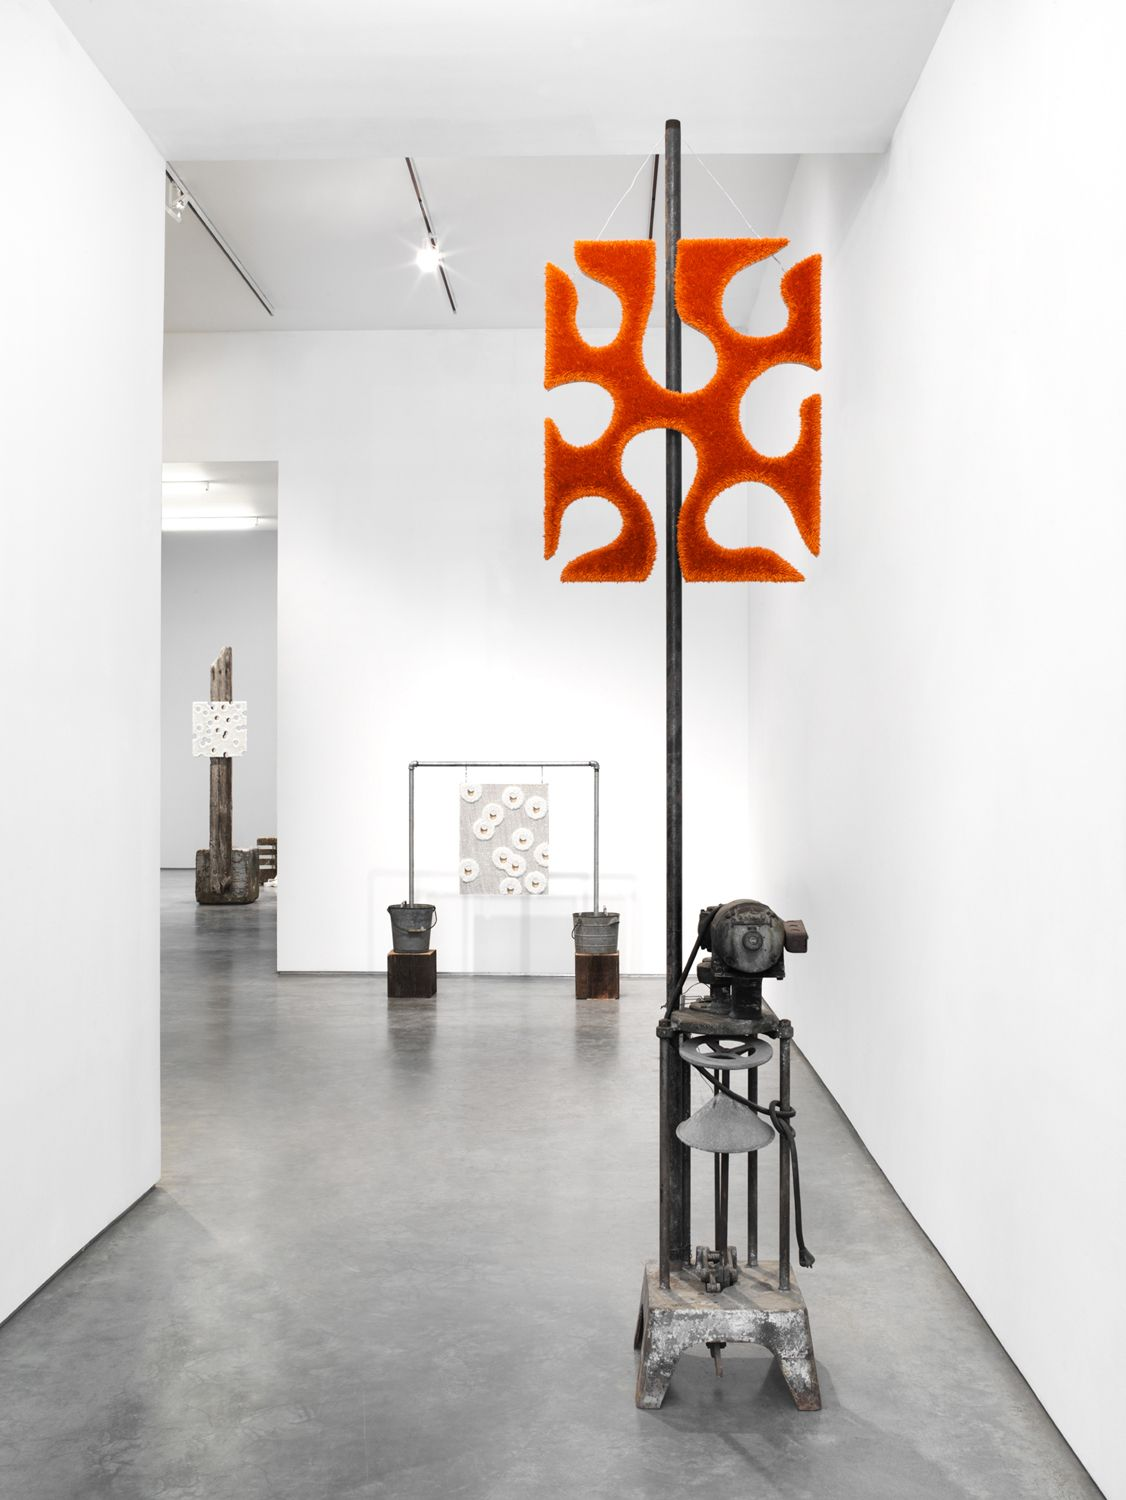 The Radiant Future (Installation View), Marianne Boesky Gallery, 2012